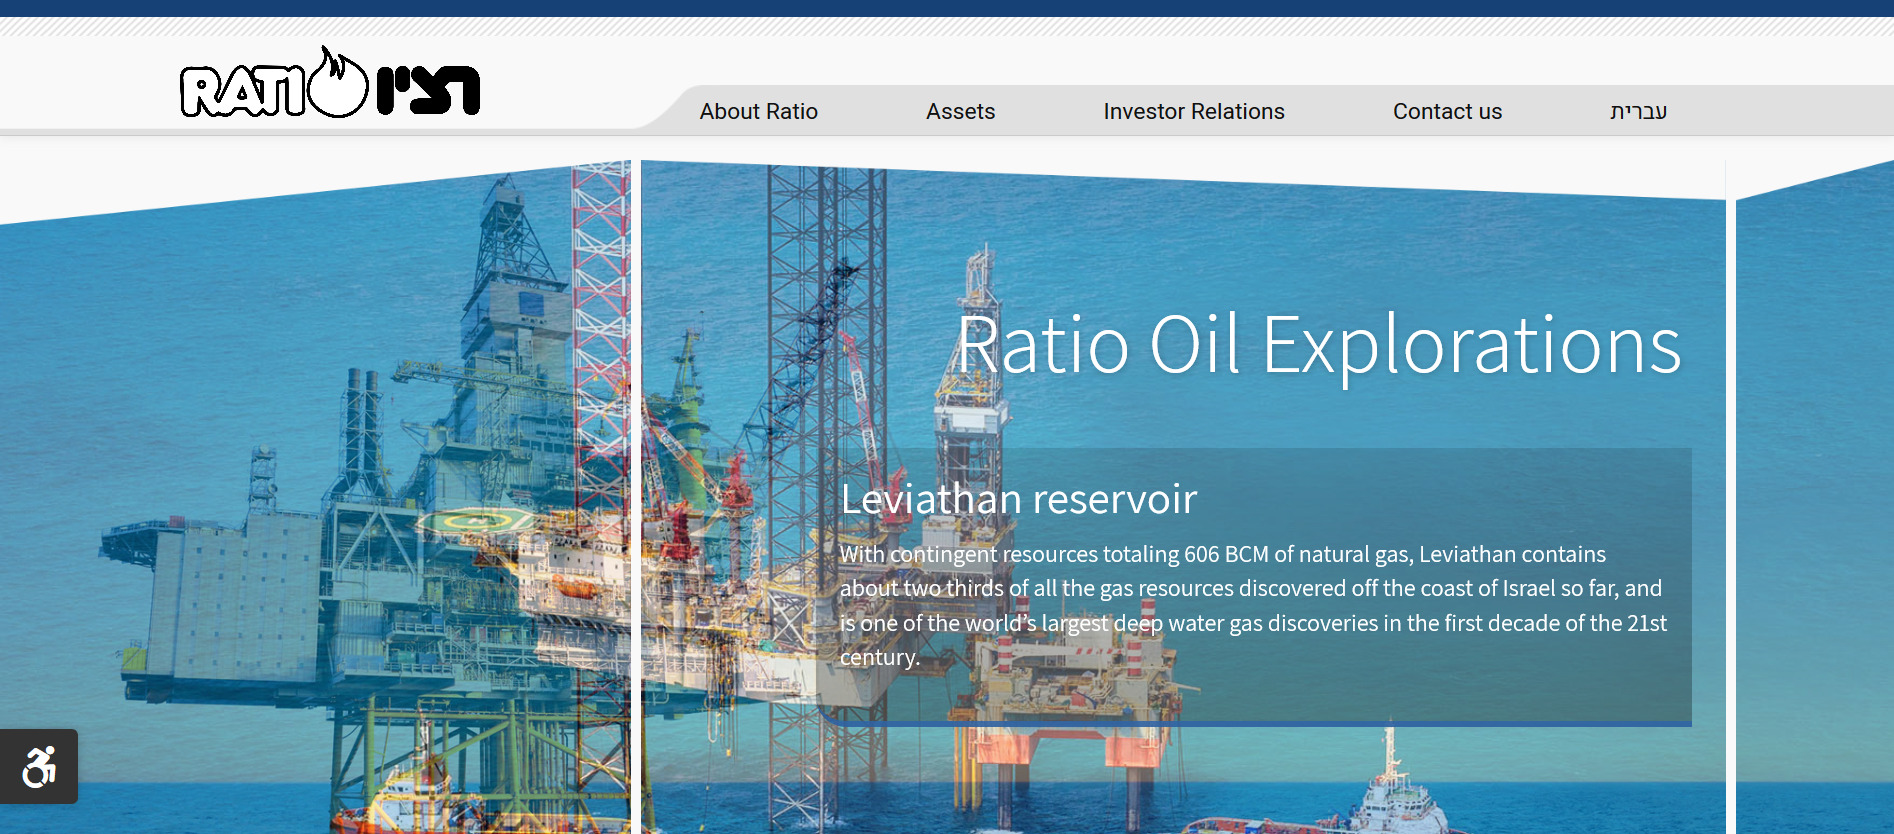 Ratio Oil image face on web page.jpg